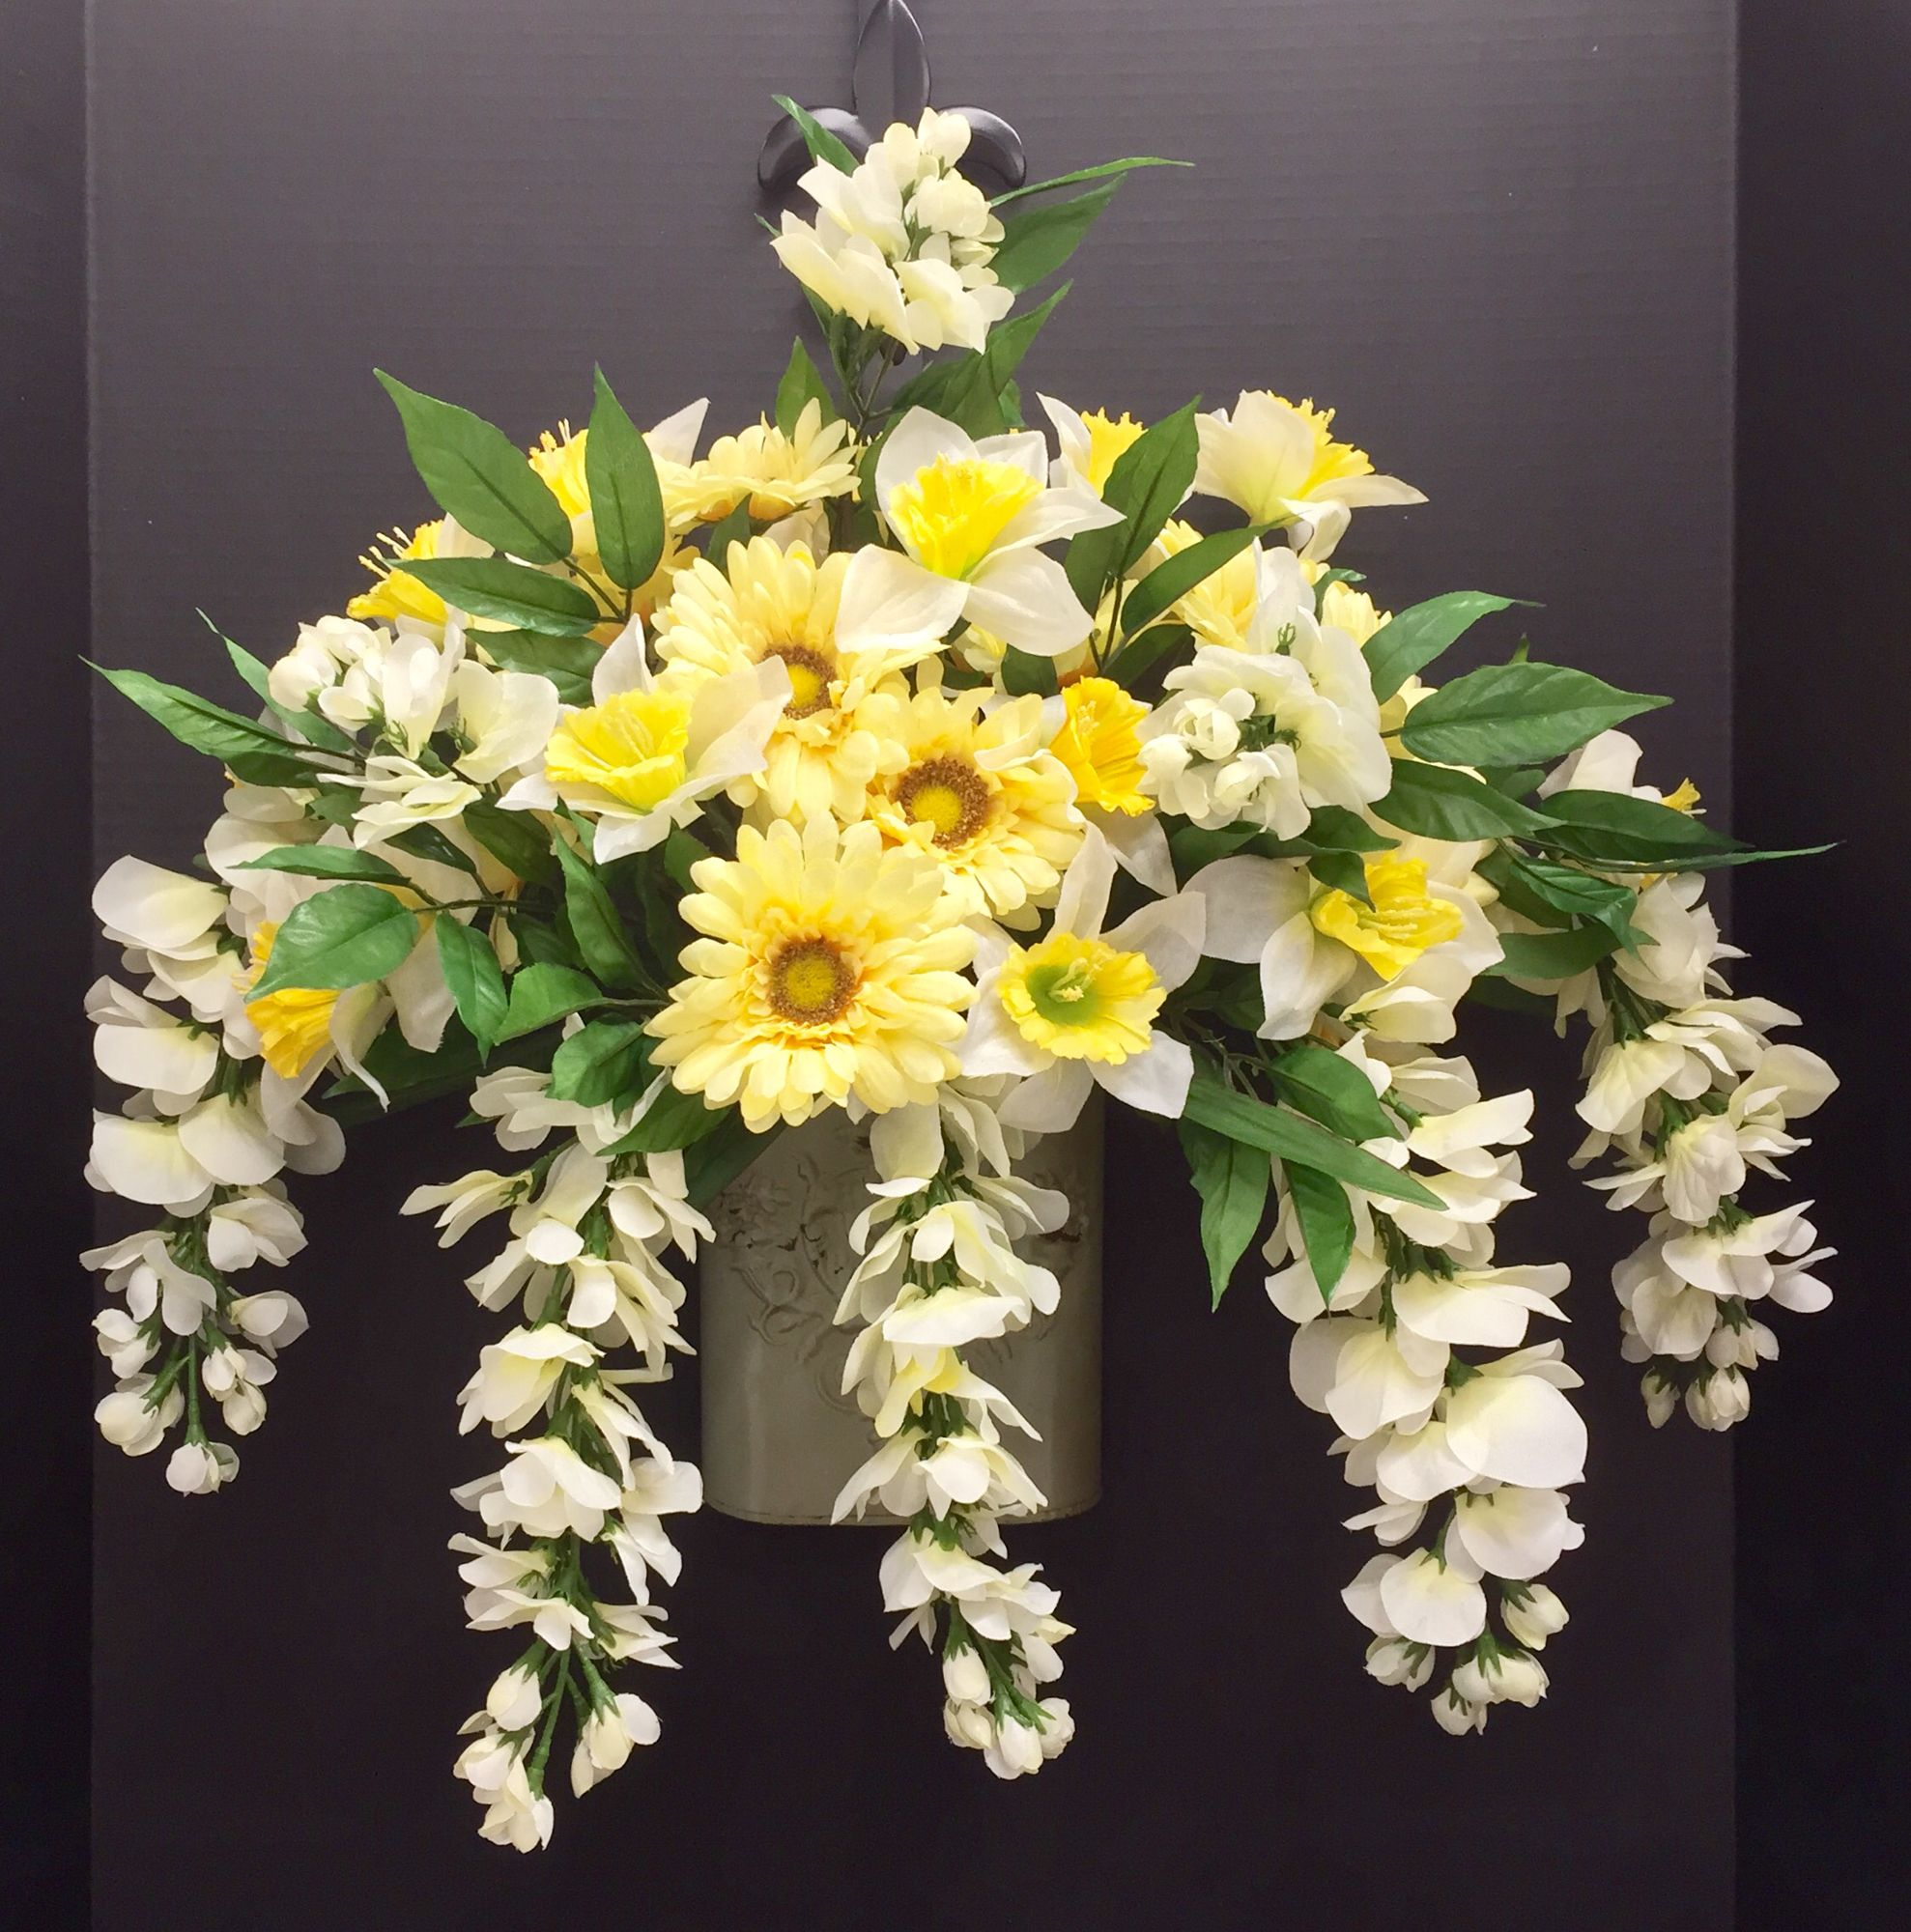 Spring Wall: Daffodils, Daisies and Wisteria on metal wall bucket ...